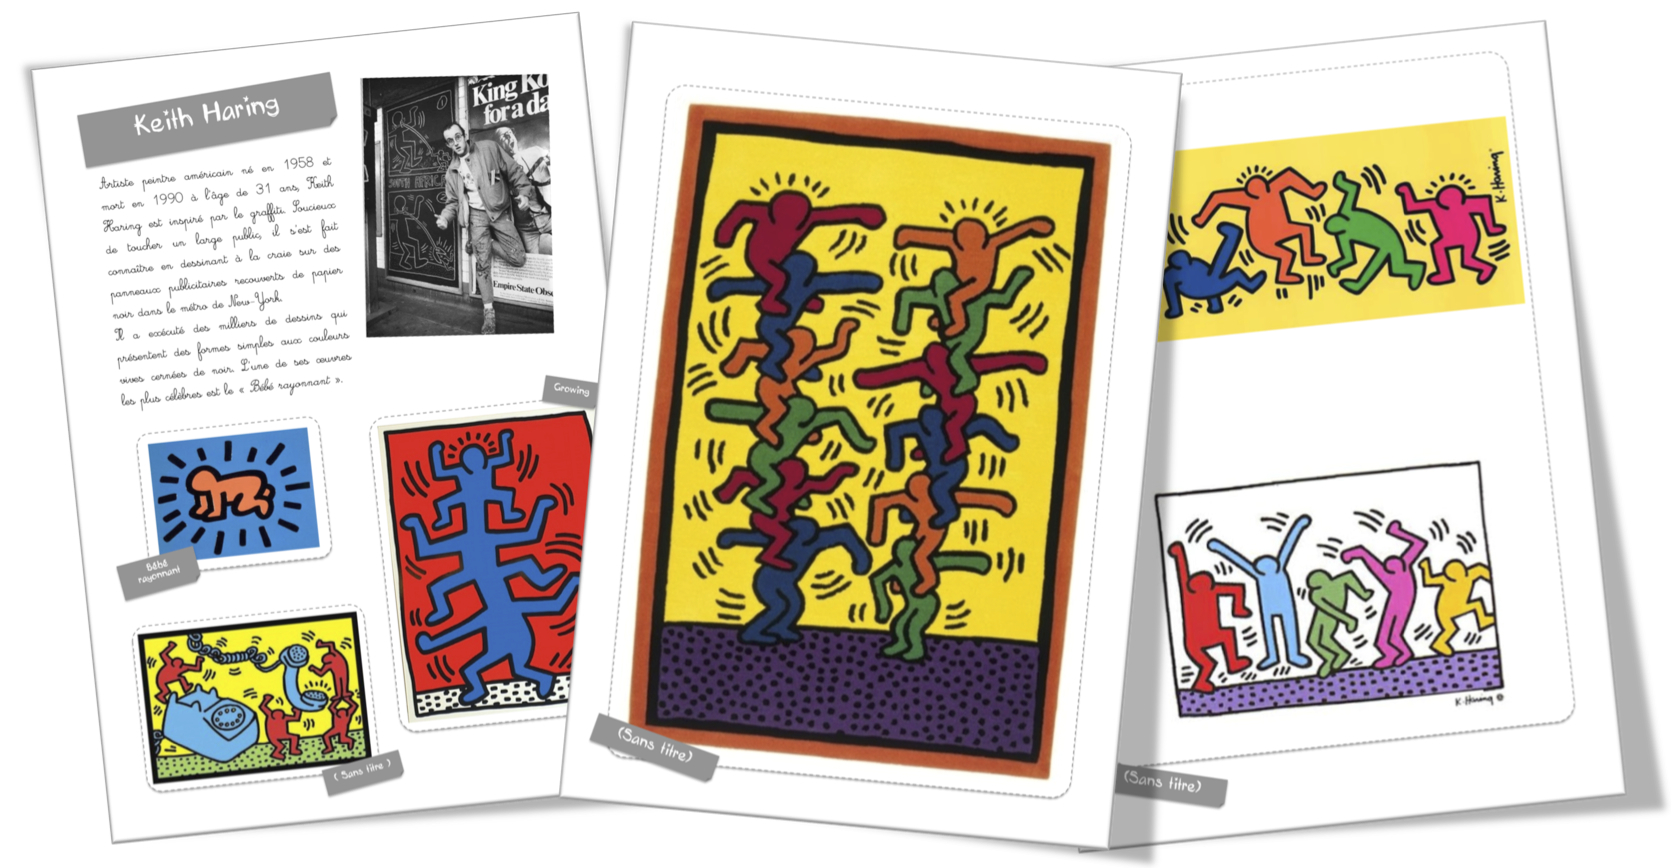 Top Fiche artiste : Keith Haring | Bout de Gomme CO99